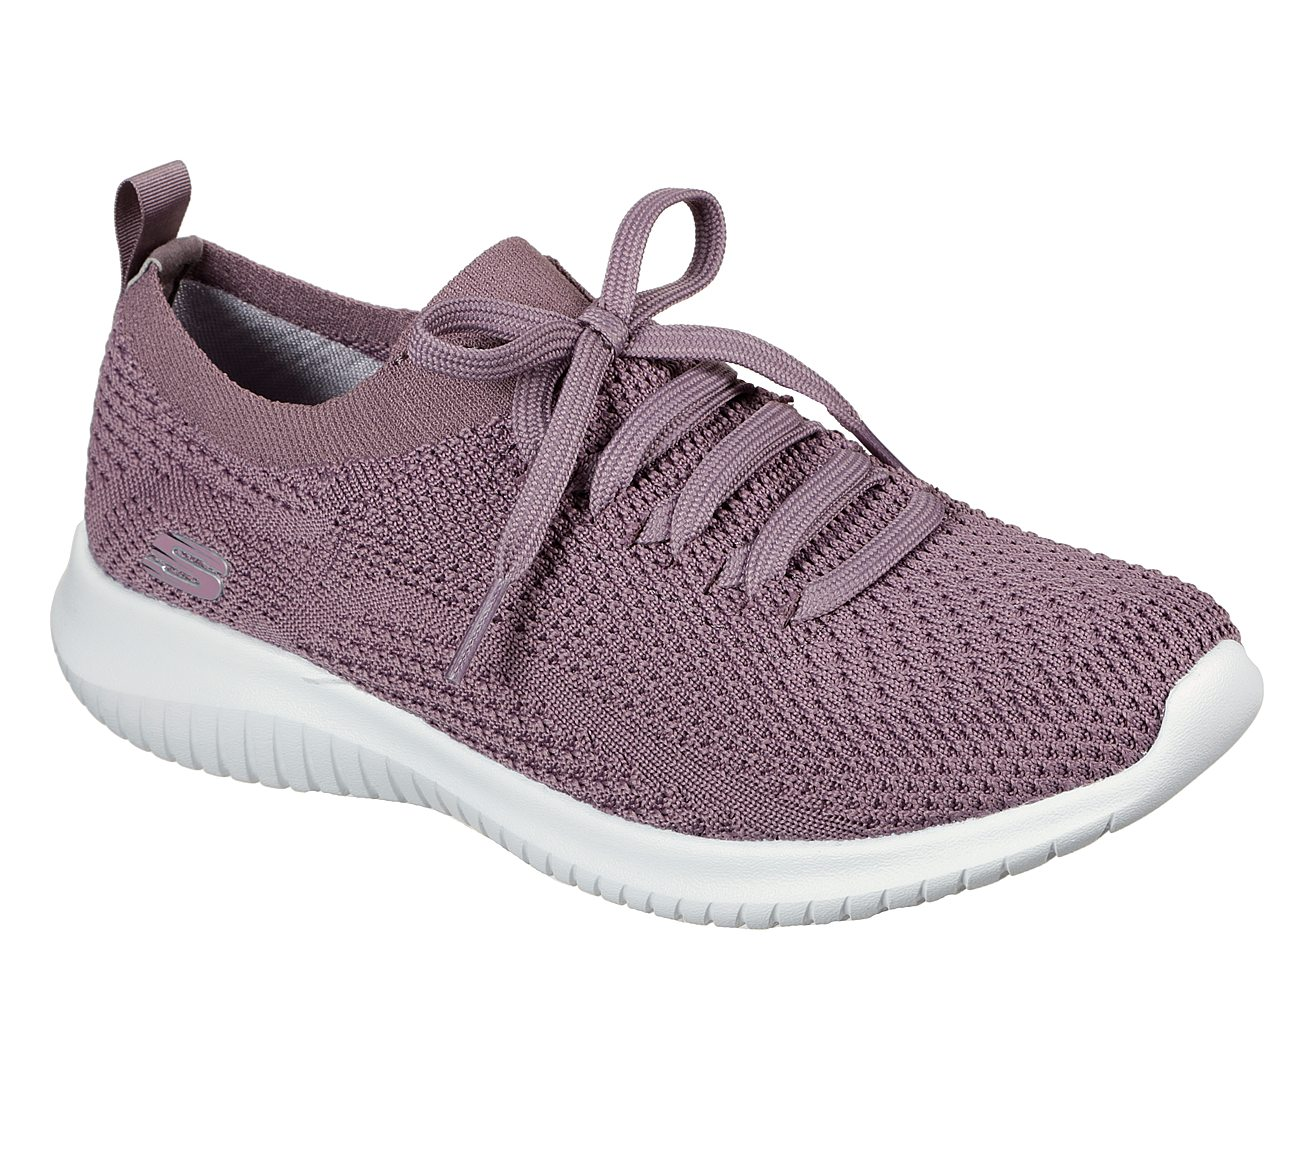 358cc178959d6 Buy SKECHERS Ultra Flex - Statements SKECHERS Sport Shoes only £63.00